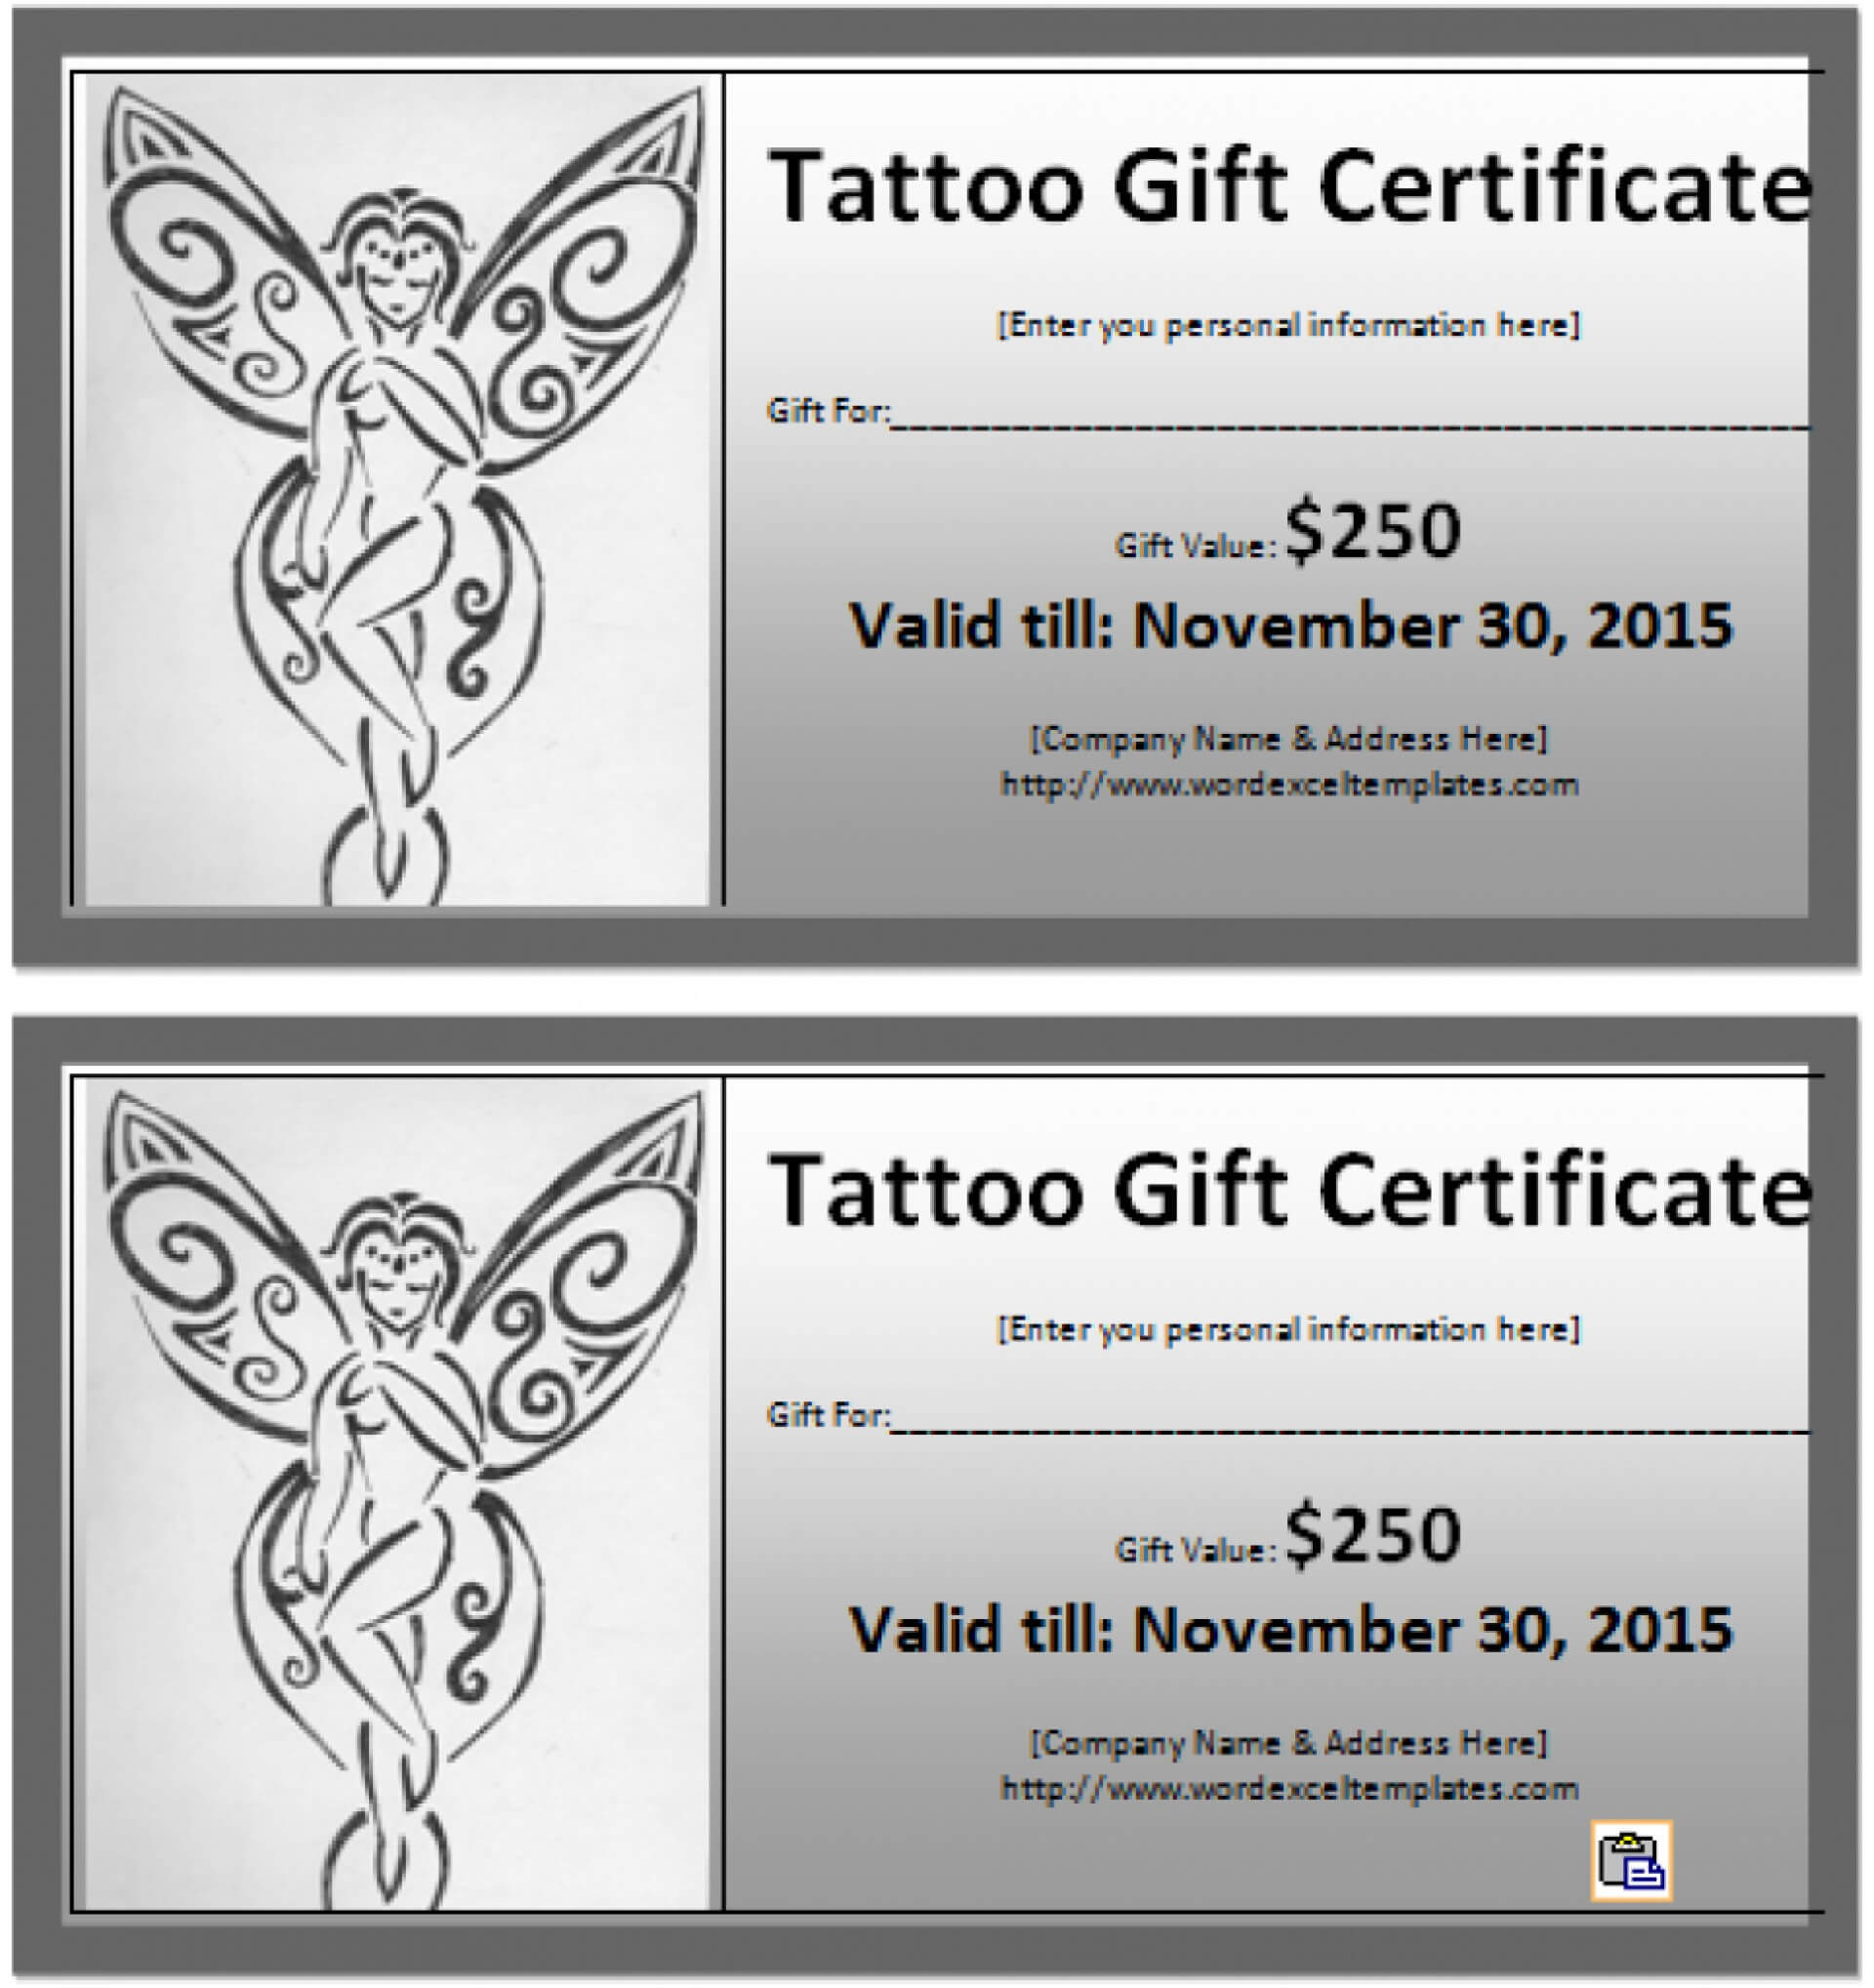 031 Free Printable Gift Certificates Restaurant Ideas Model With Regard To Tattoo Gift Certificate Template